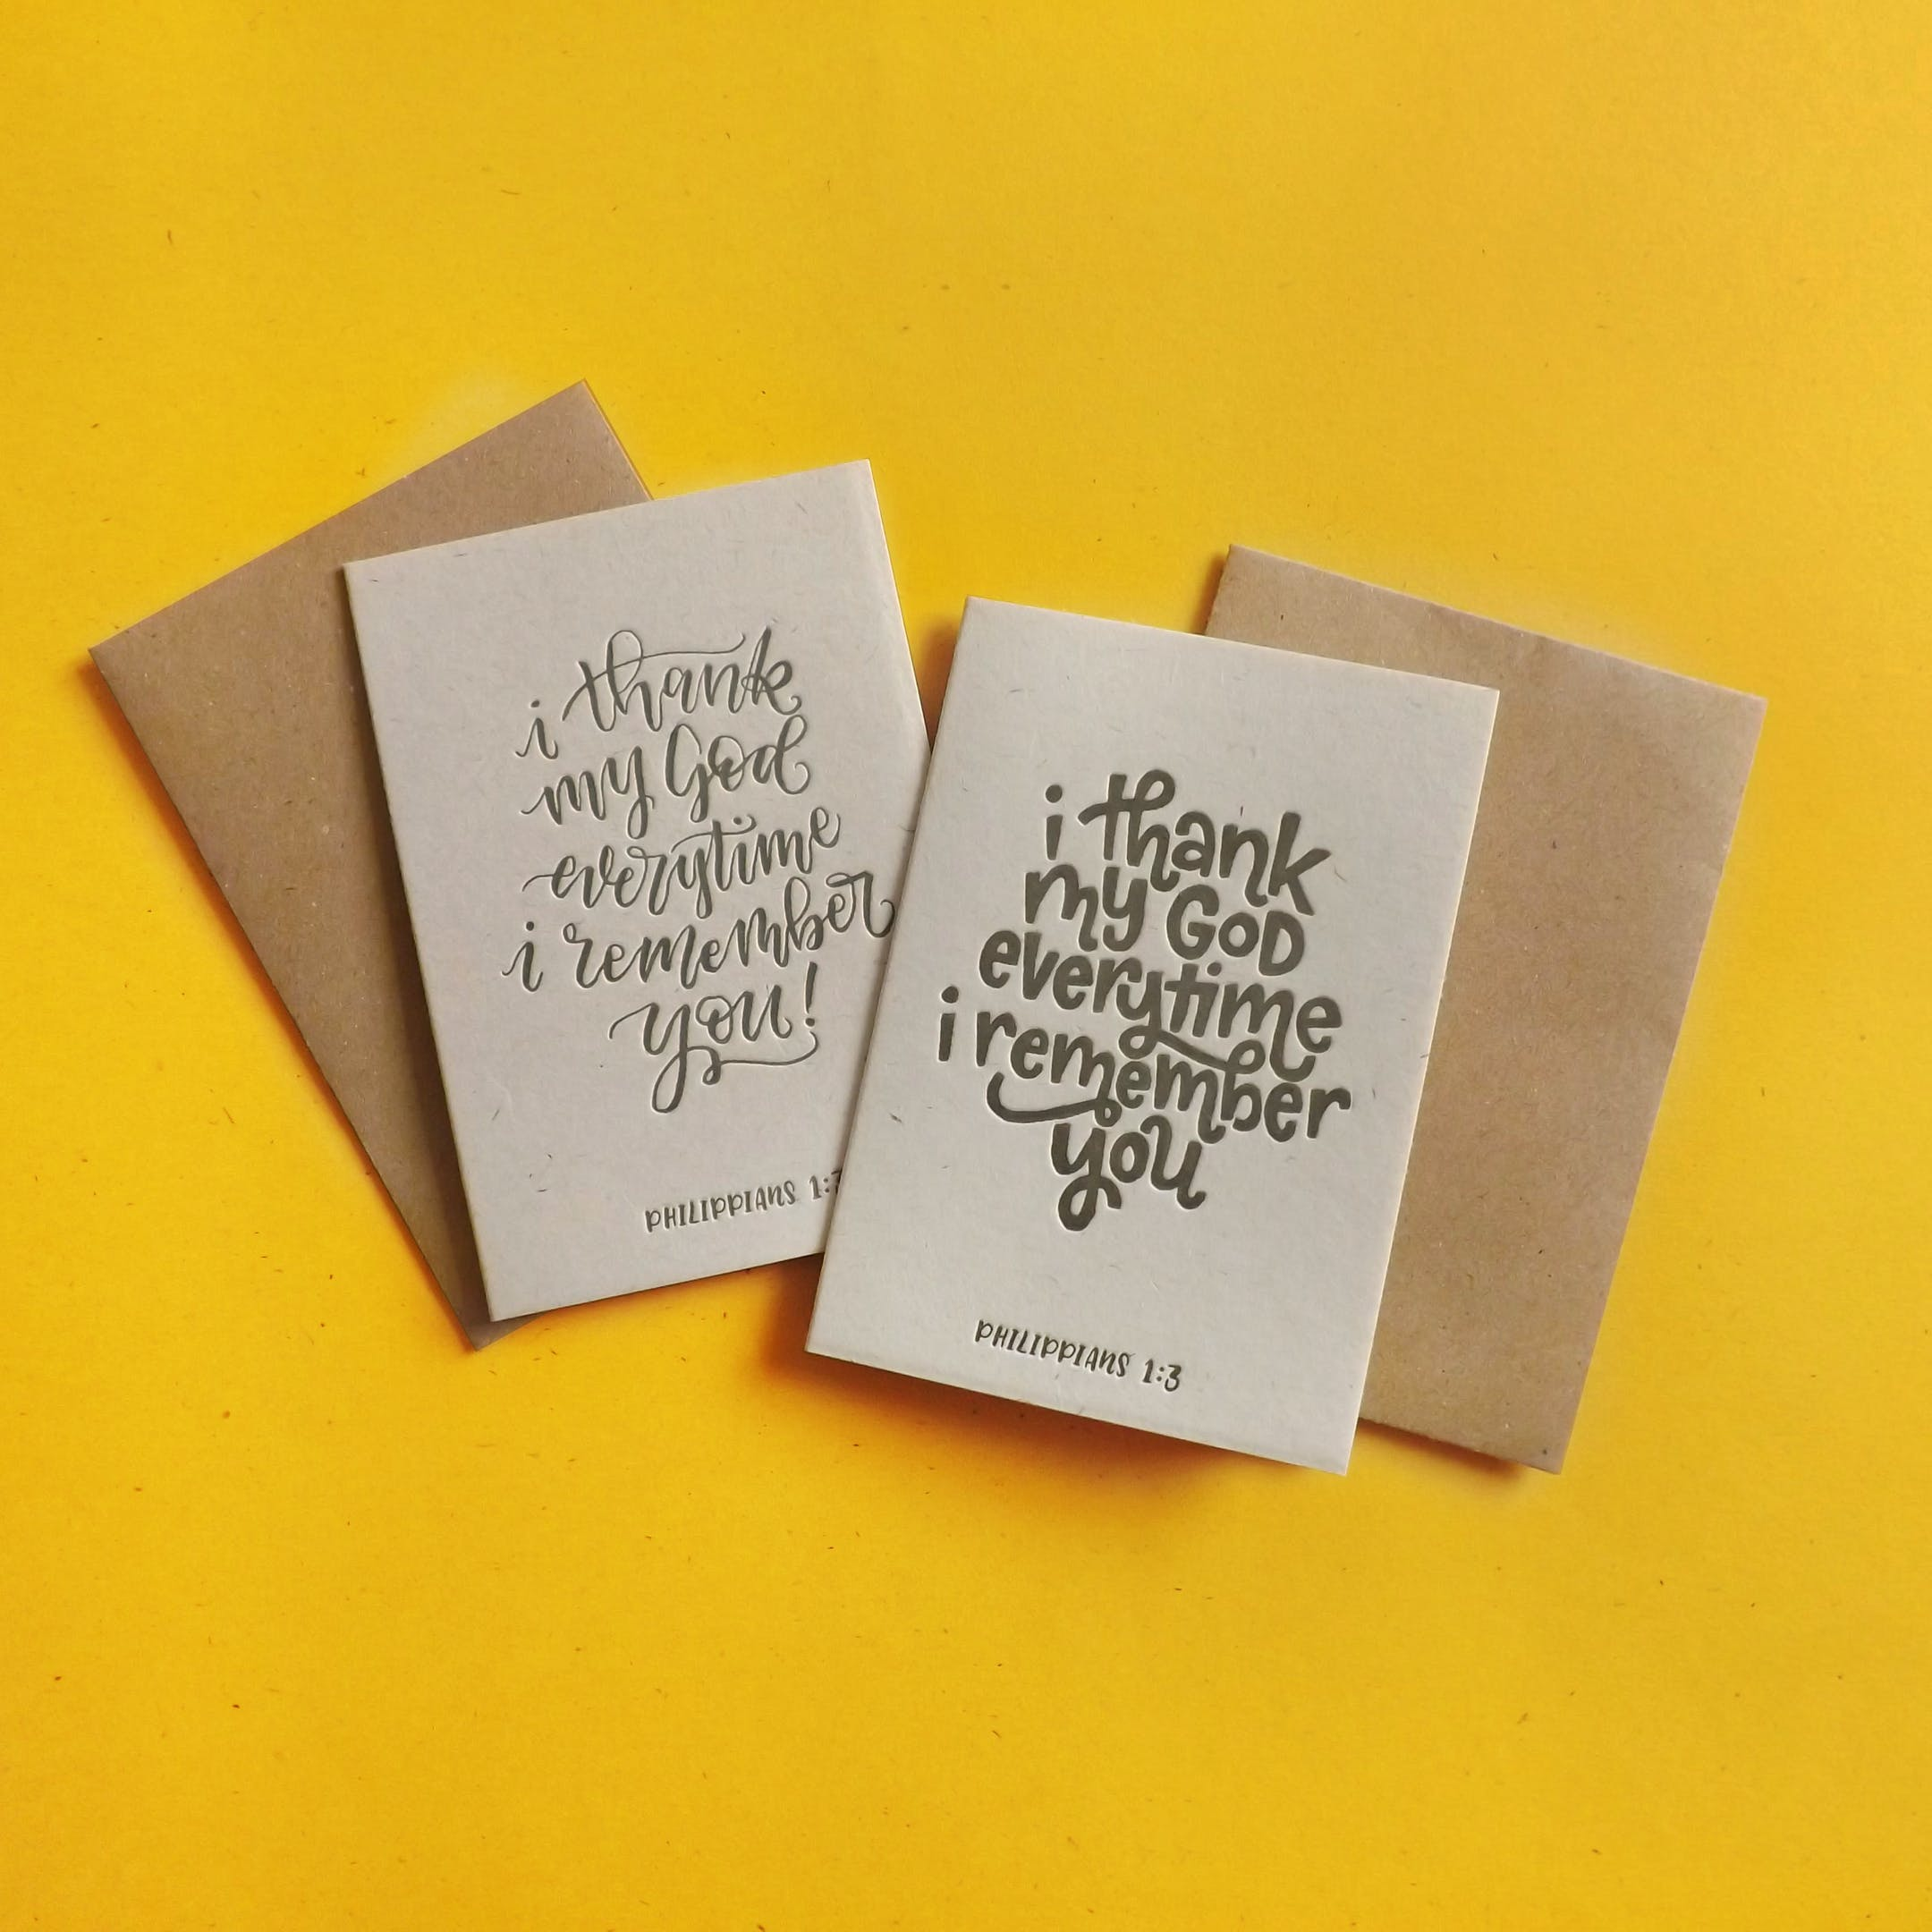 Letterpress Thank You Cards | Christian Cards UK | The Mustard Seed Press | Cheerfully Given